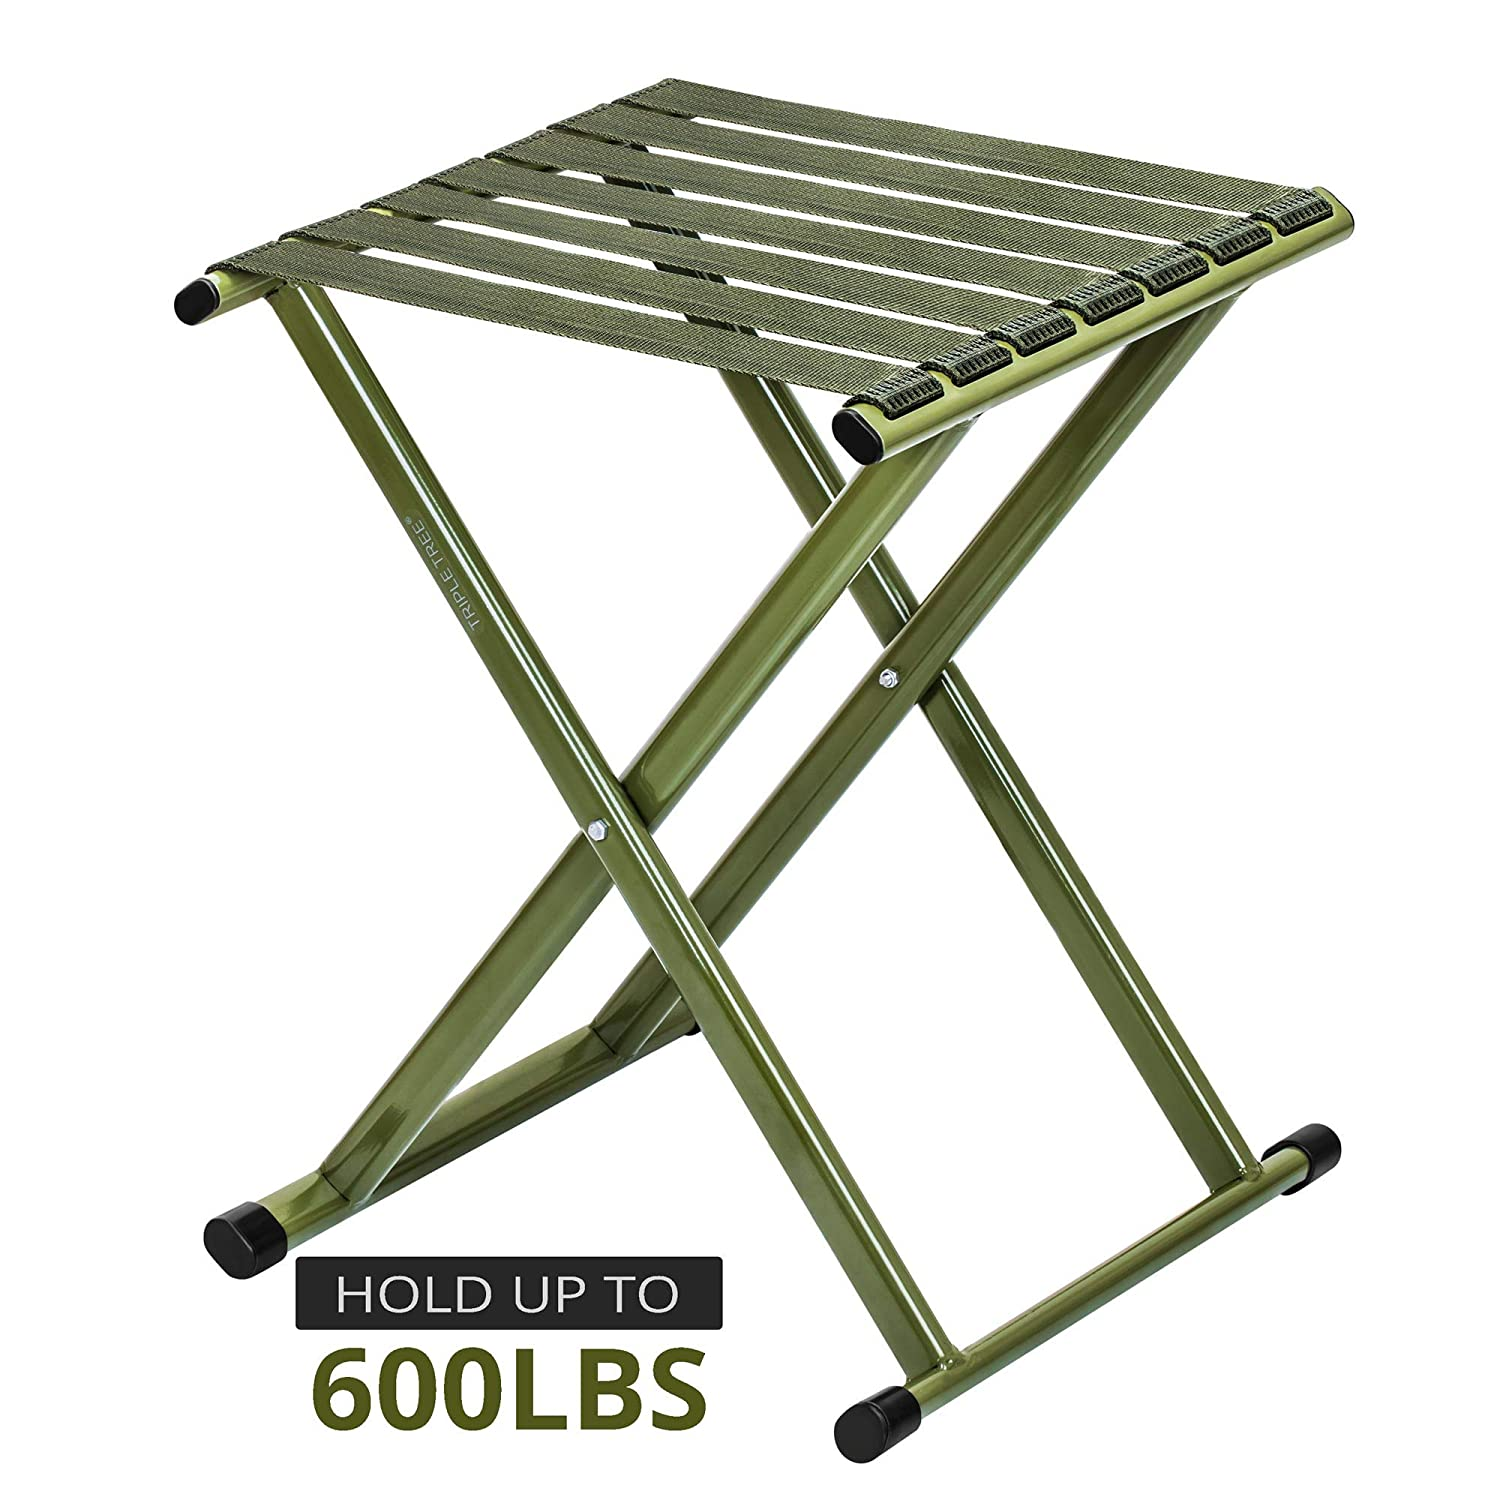 Folding Stool 17.8 Height, Super Strong Heavy Duty Outdoor Portable Folding Chair Hold up to 650 lbs, Unfold Size 13.9 L x14.3 W x17.8 H Inch Pack of One Large